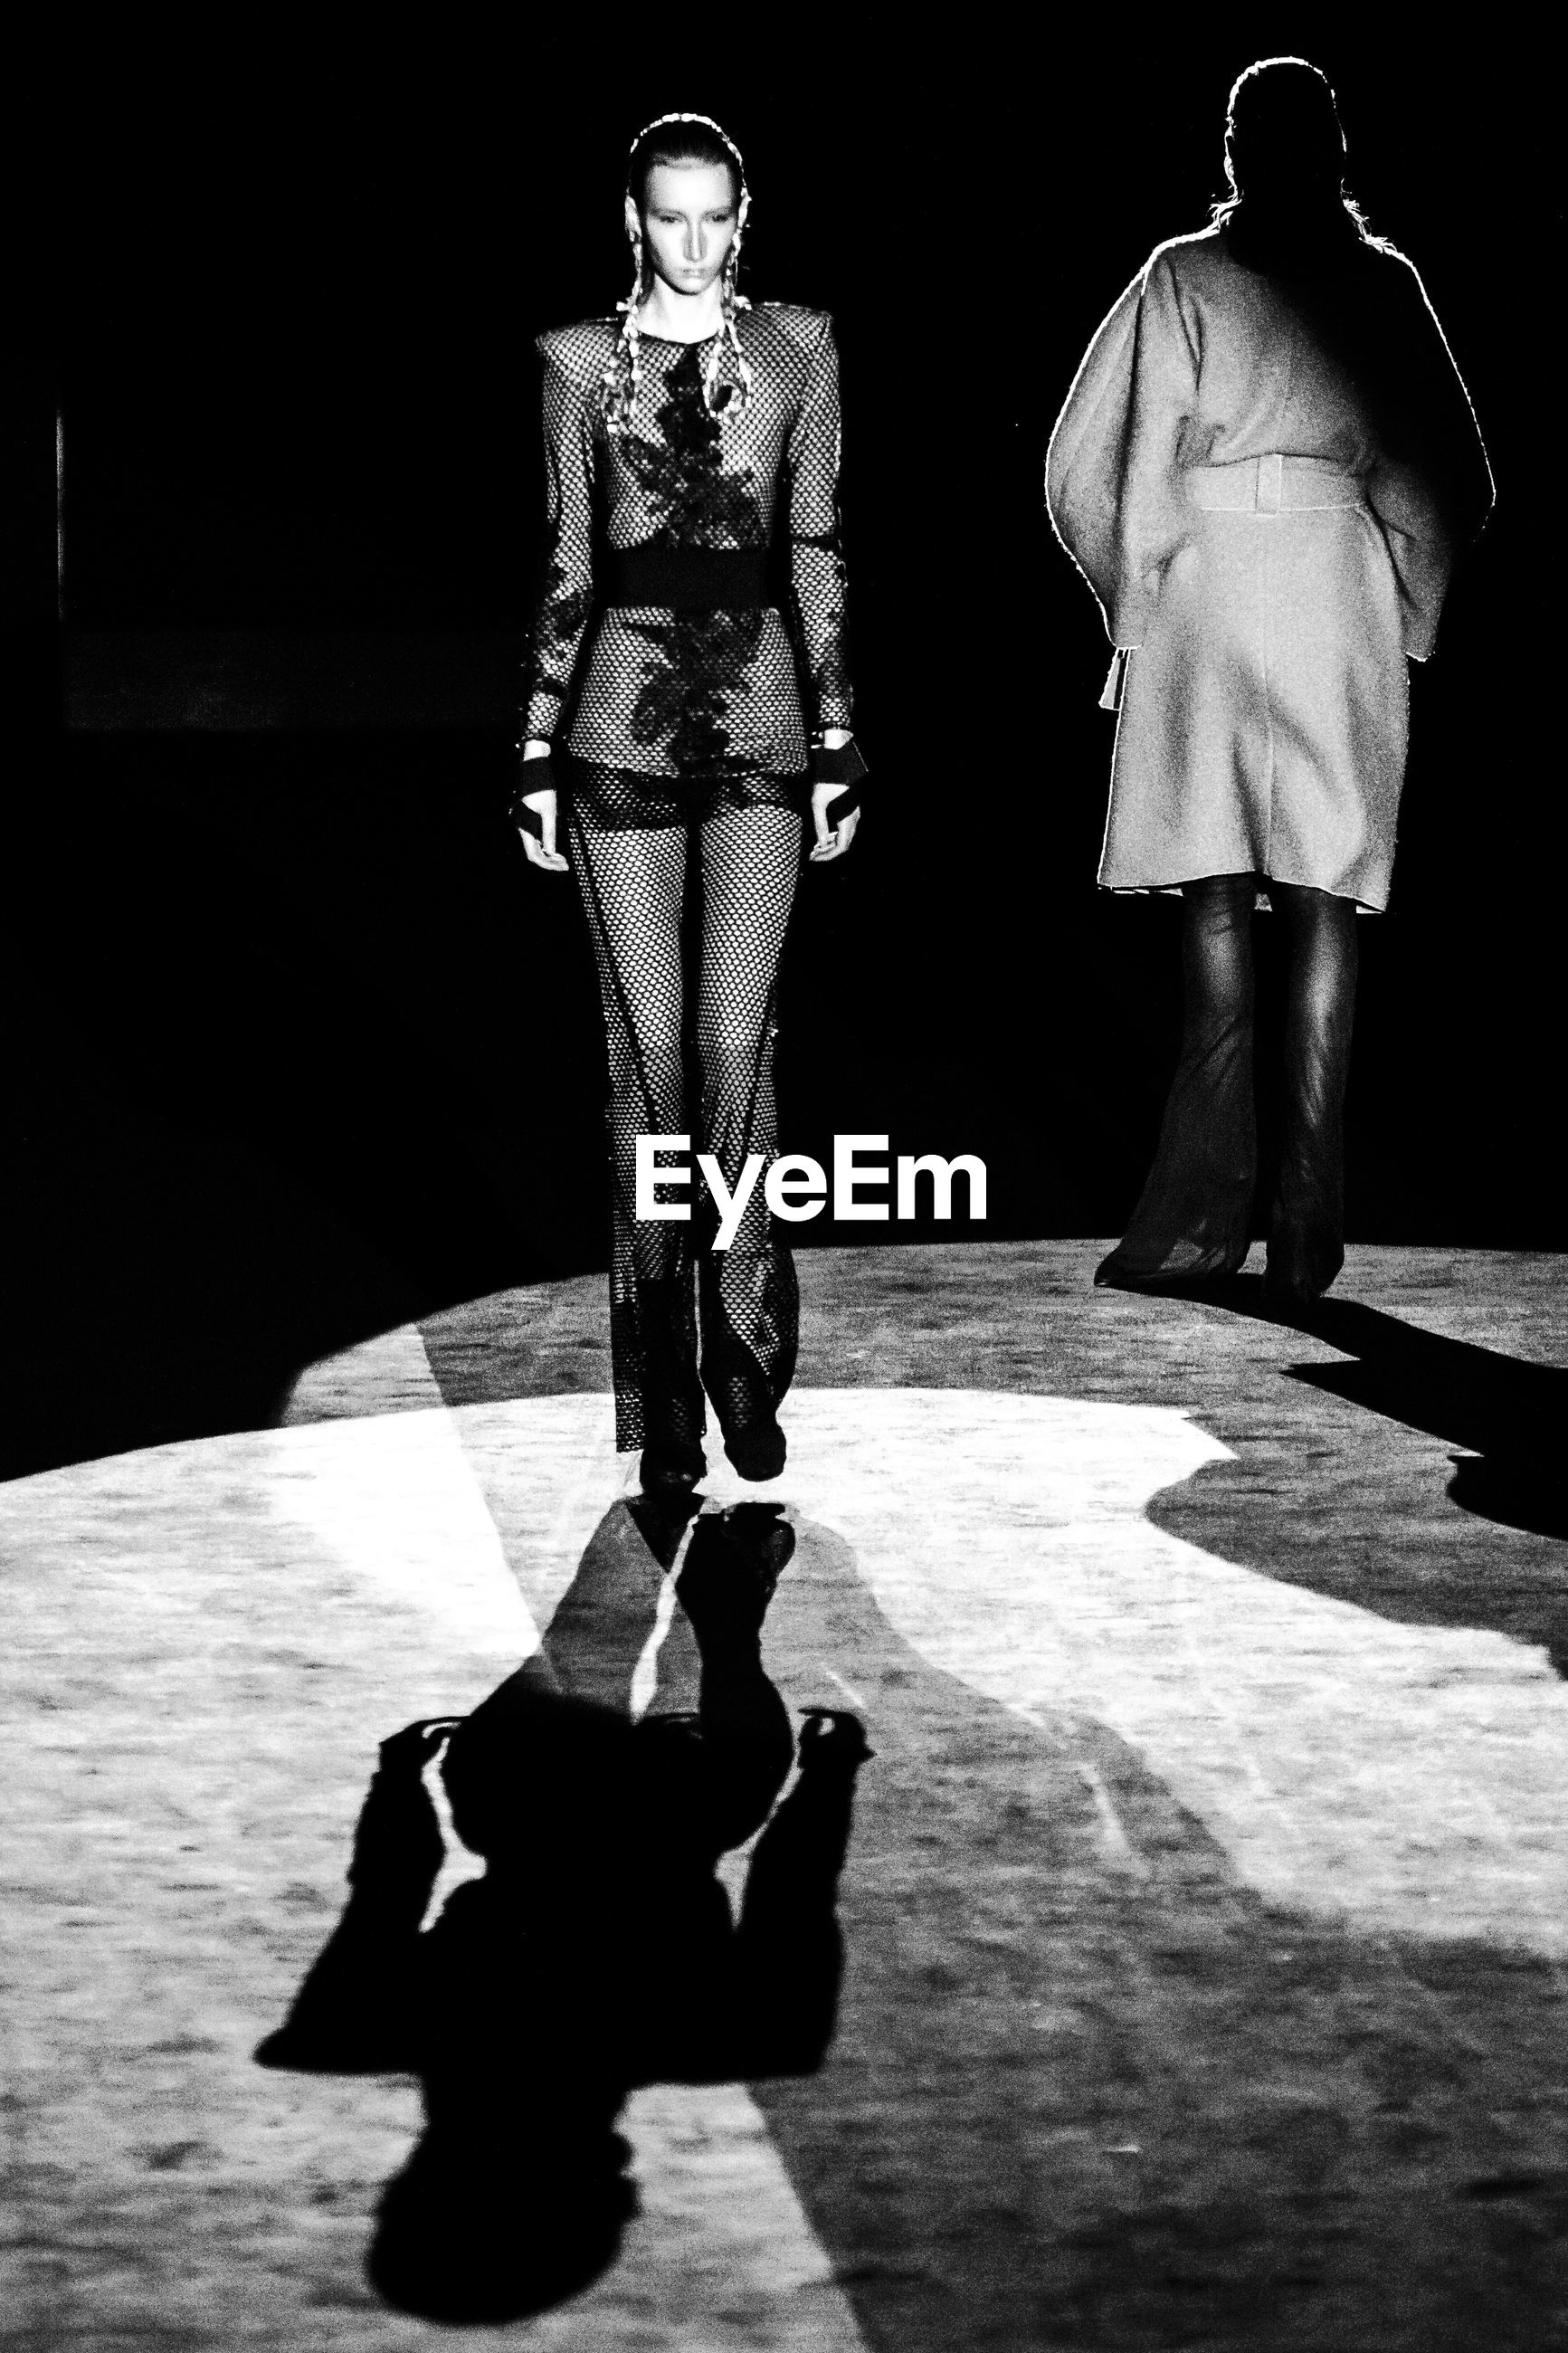 black, black and white, monochrome, monochrome photography, full length, white, adult, footwear, shadow, fashion, men, darkness, spring, performance art, standing, women, young adult, clothing, two people, person, indoors, portrait